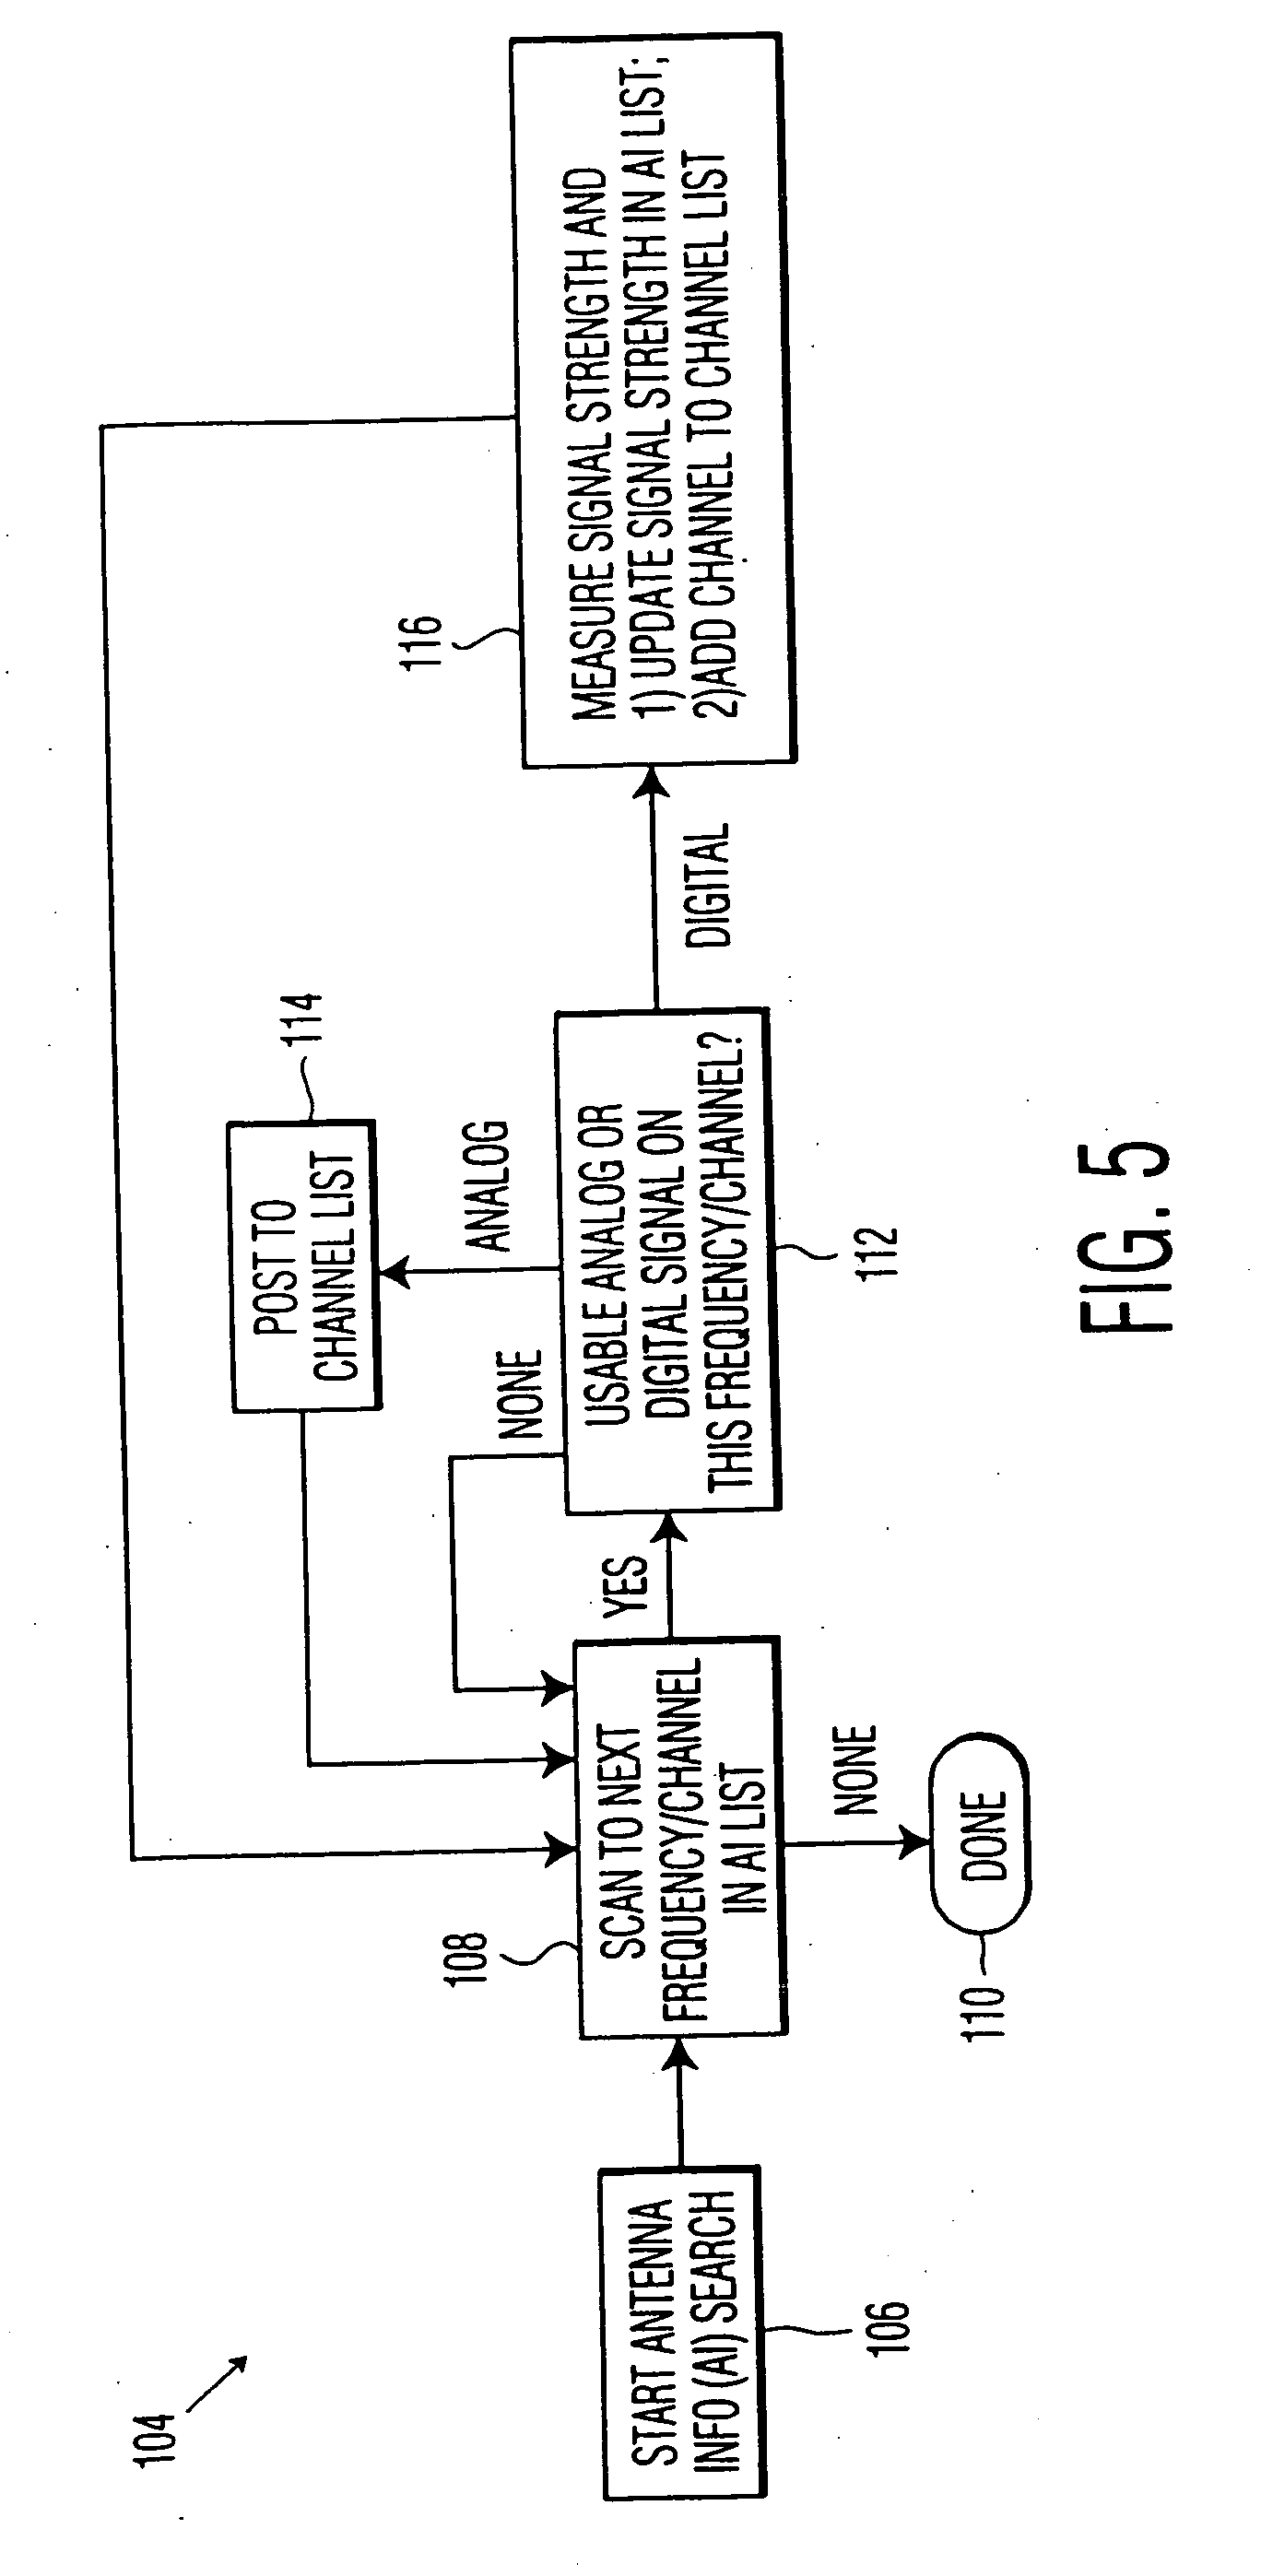 Patent Us20060033843 Real Time Signal Strength Measurement And Block Diagram Of An Analogue Uhf Tv Receiver Drawing